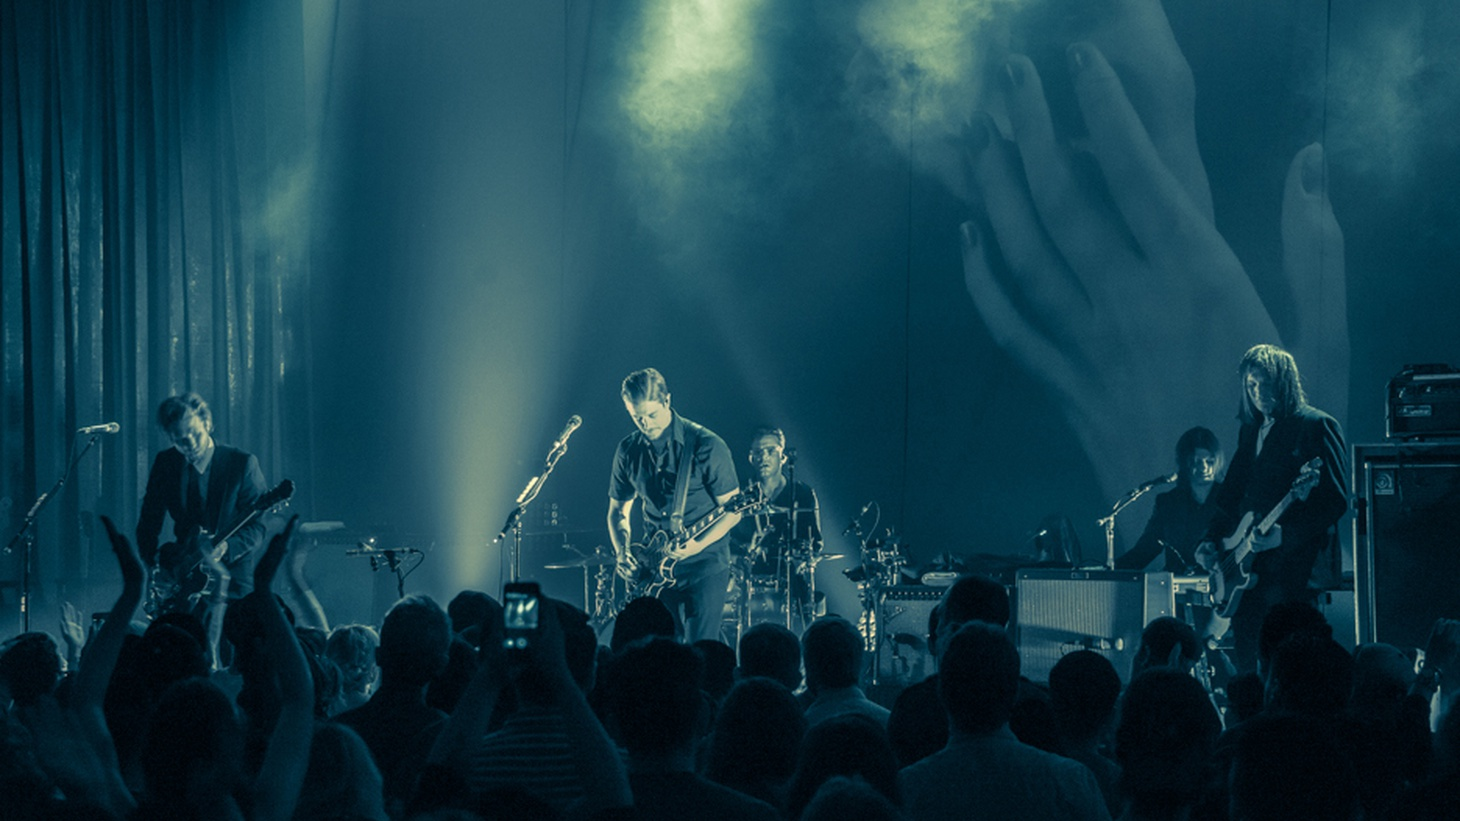 Interpol returns to form with their 2014 release, El Pintor and on Morning Becomes Eclectic, the band played several new songs live for the first time.